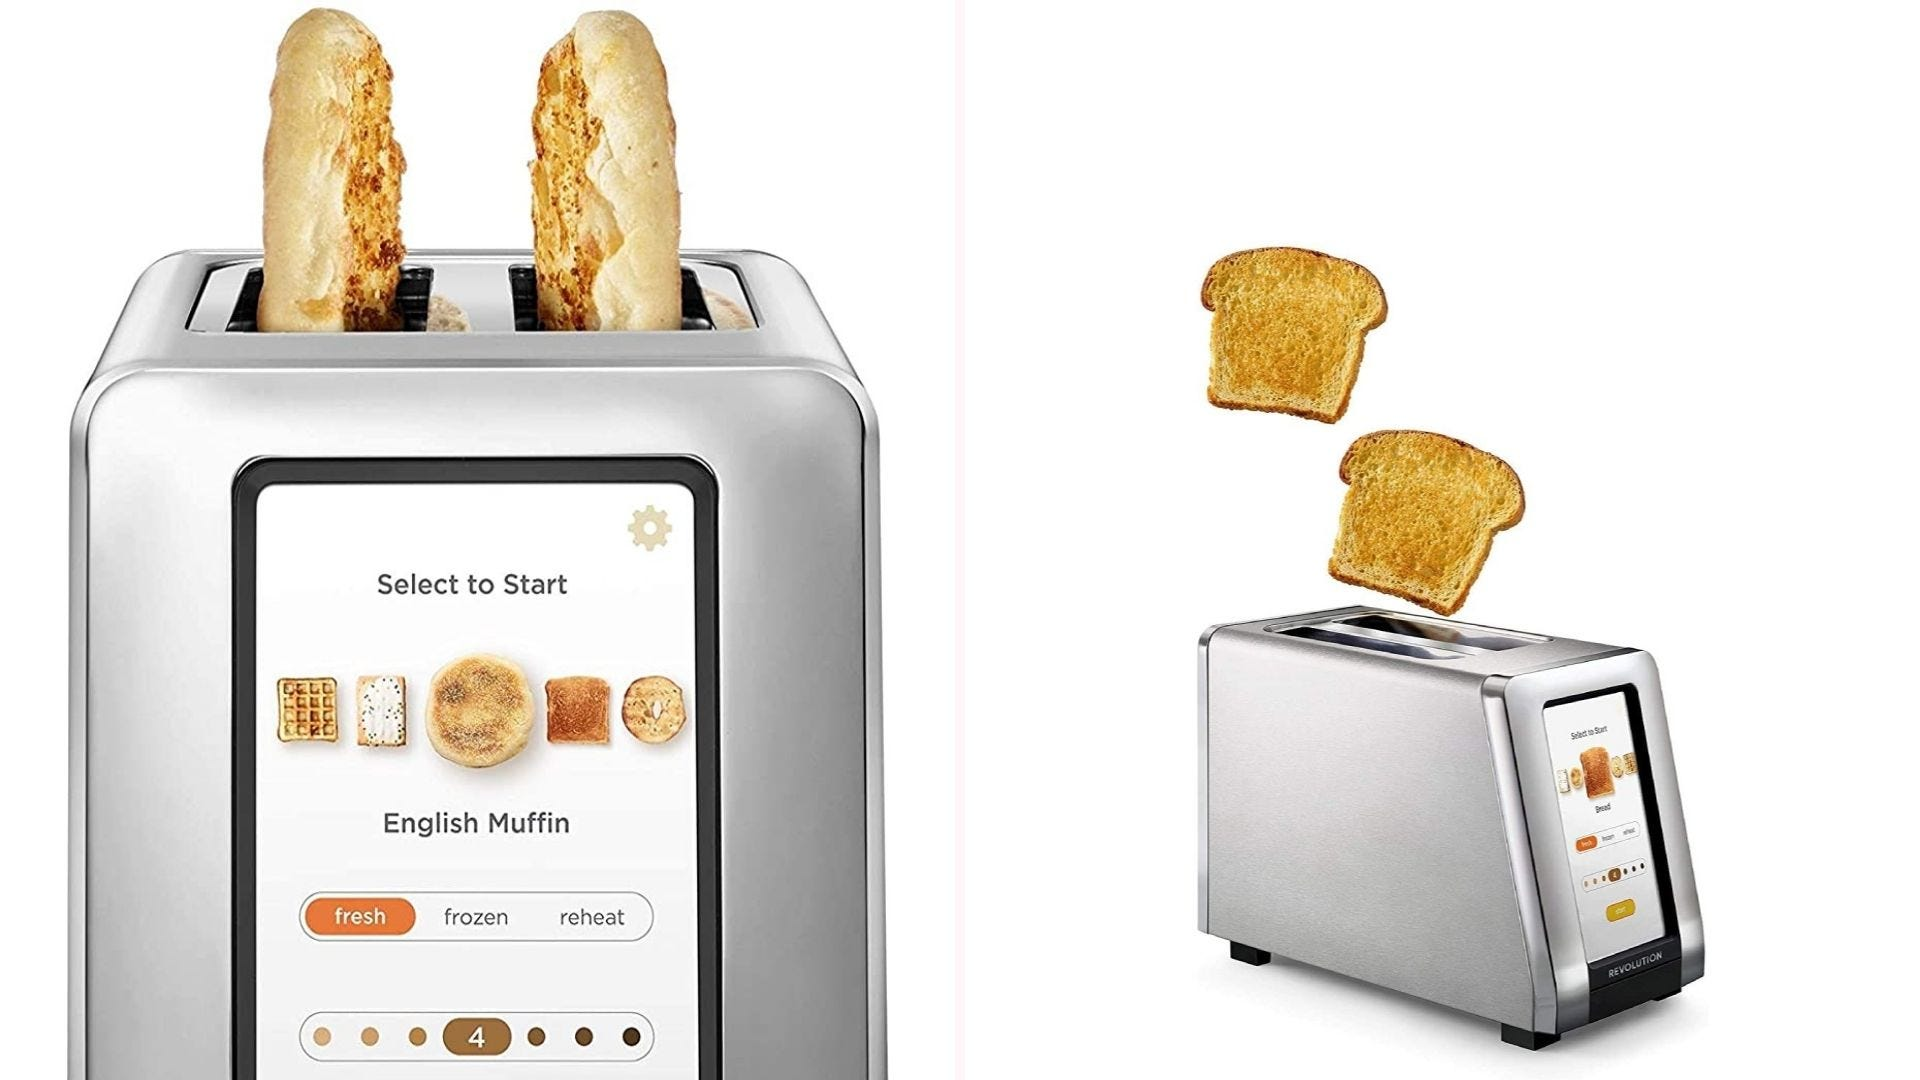 On the left is a close up view of a silver toaster's LCD interface, which showcases bread-type and browning settings. On the right, the toaster ejects two pieces of sandwich bread into the air.